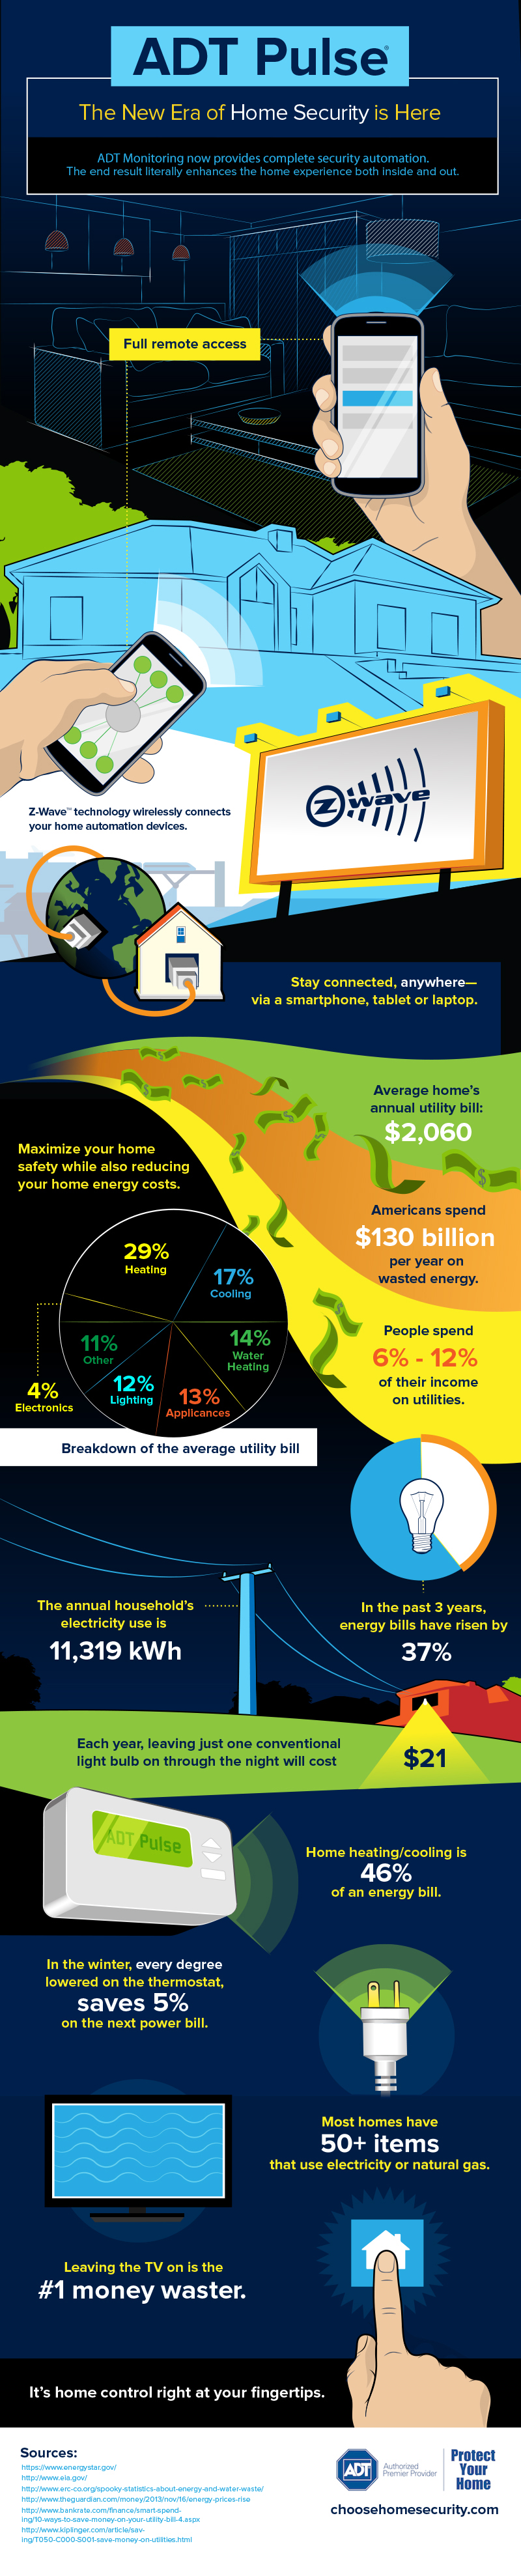 ADT Pulse Infographic